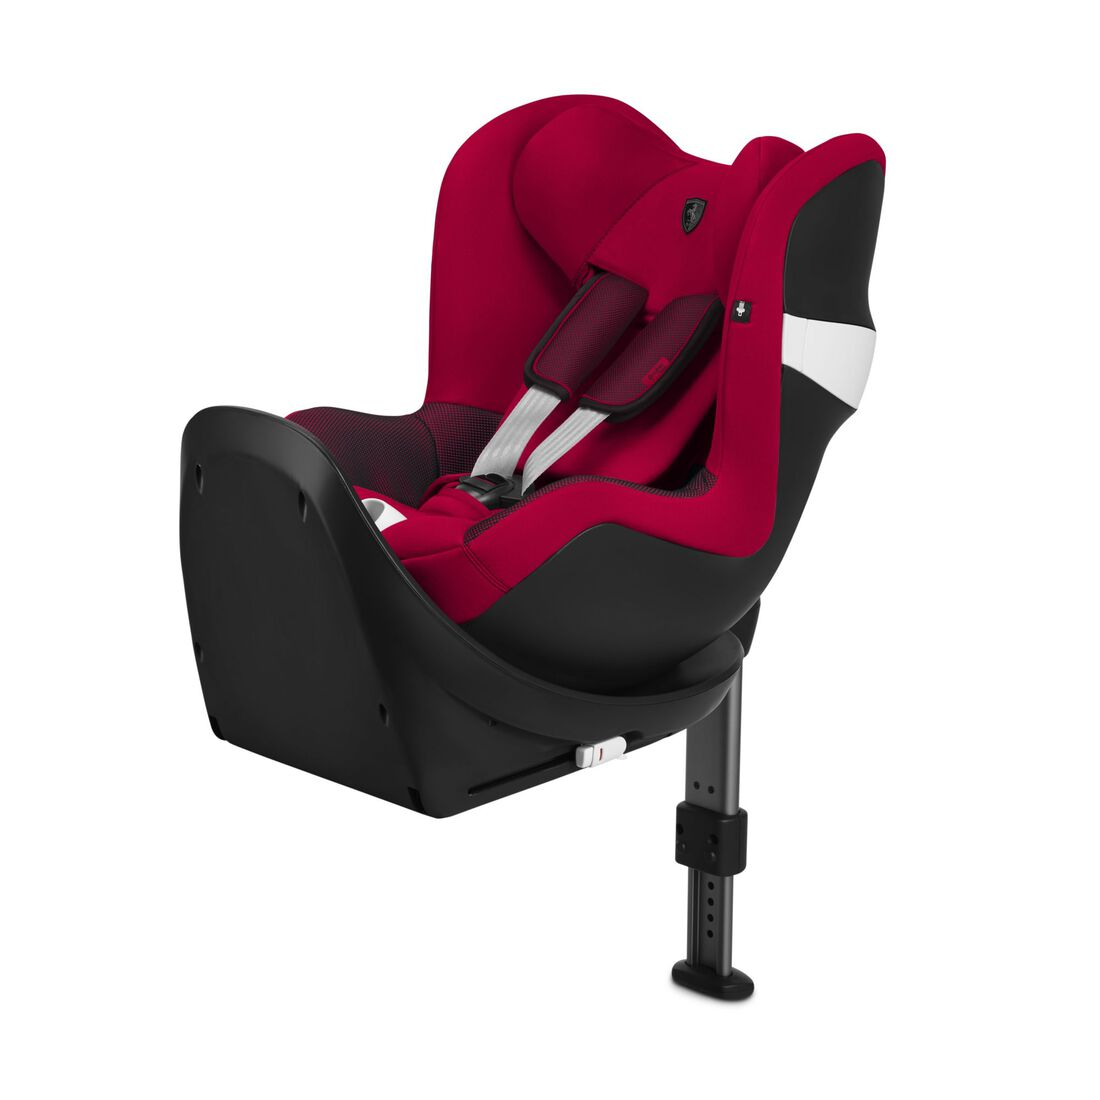 CYBEX Sirona M2 i-Size - Ferrari Racing Red in Ferrari Racing Red large Bild 2